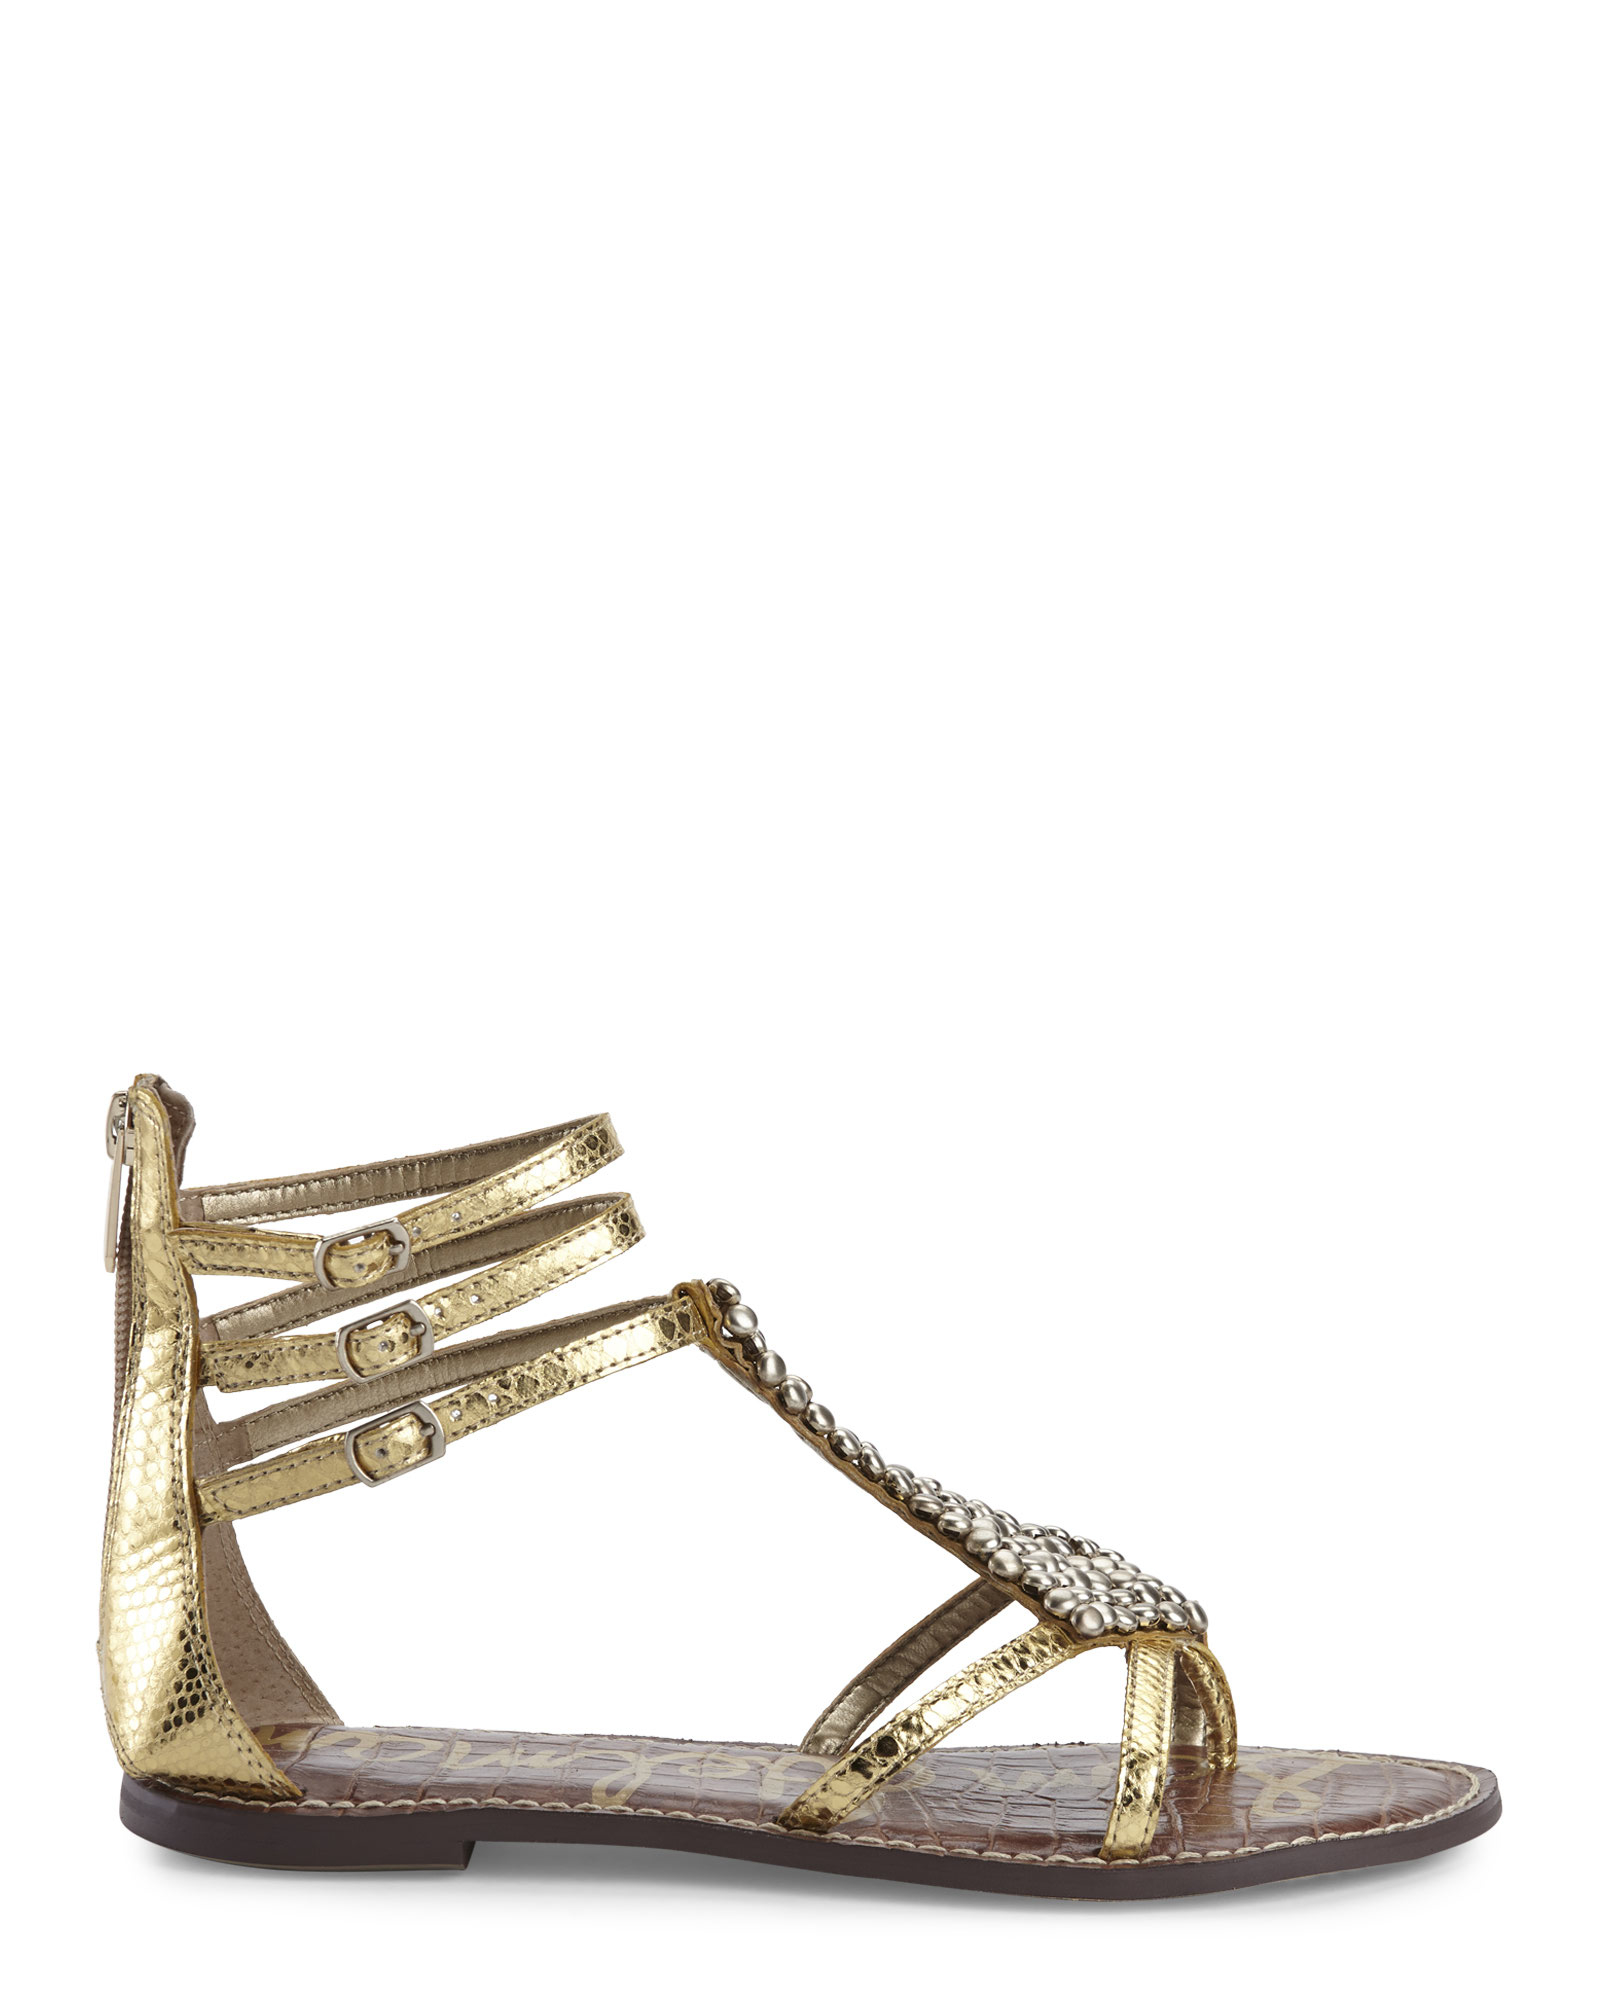 fe5136a87db Gallery. Previously sold at  Century 21 · Women s Gladiator Sandals Women s Sam  Edelman ...